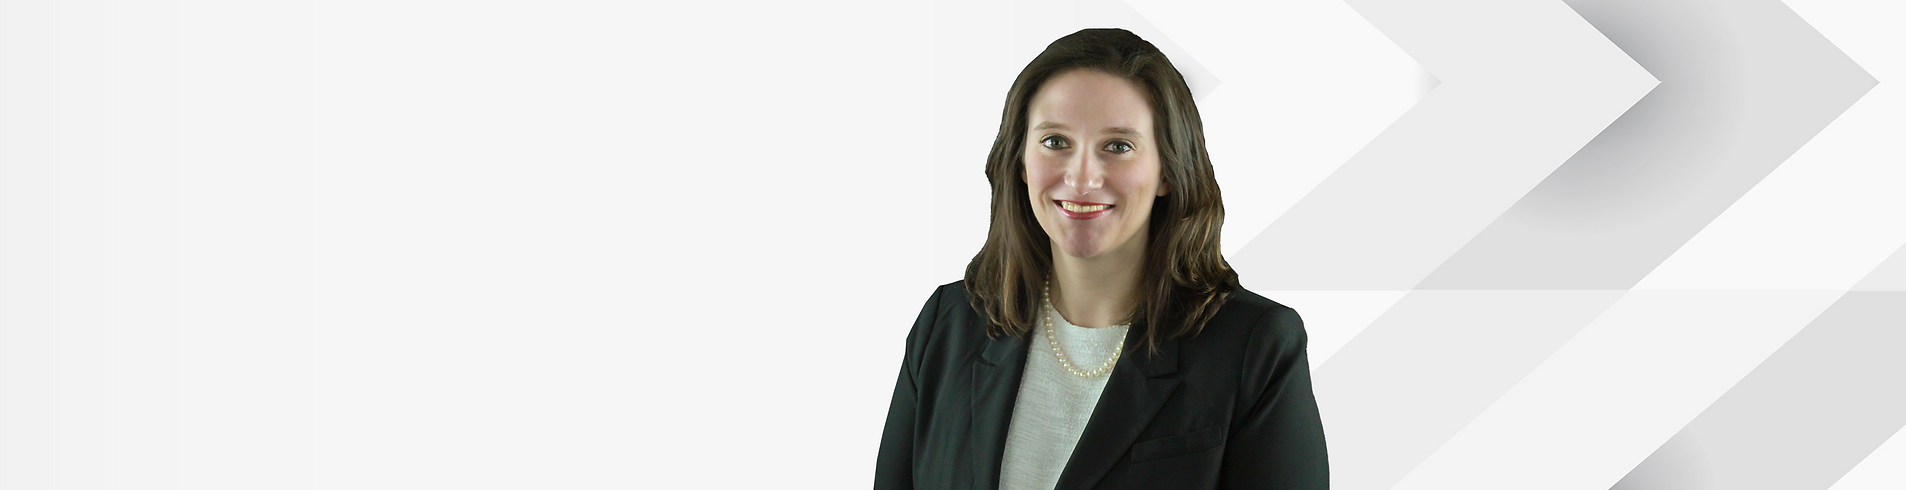 Mallory Smith, Litigation Attorney in Rochester New York | Law Offices of Pullano & Farrow PLLC